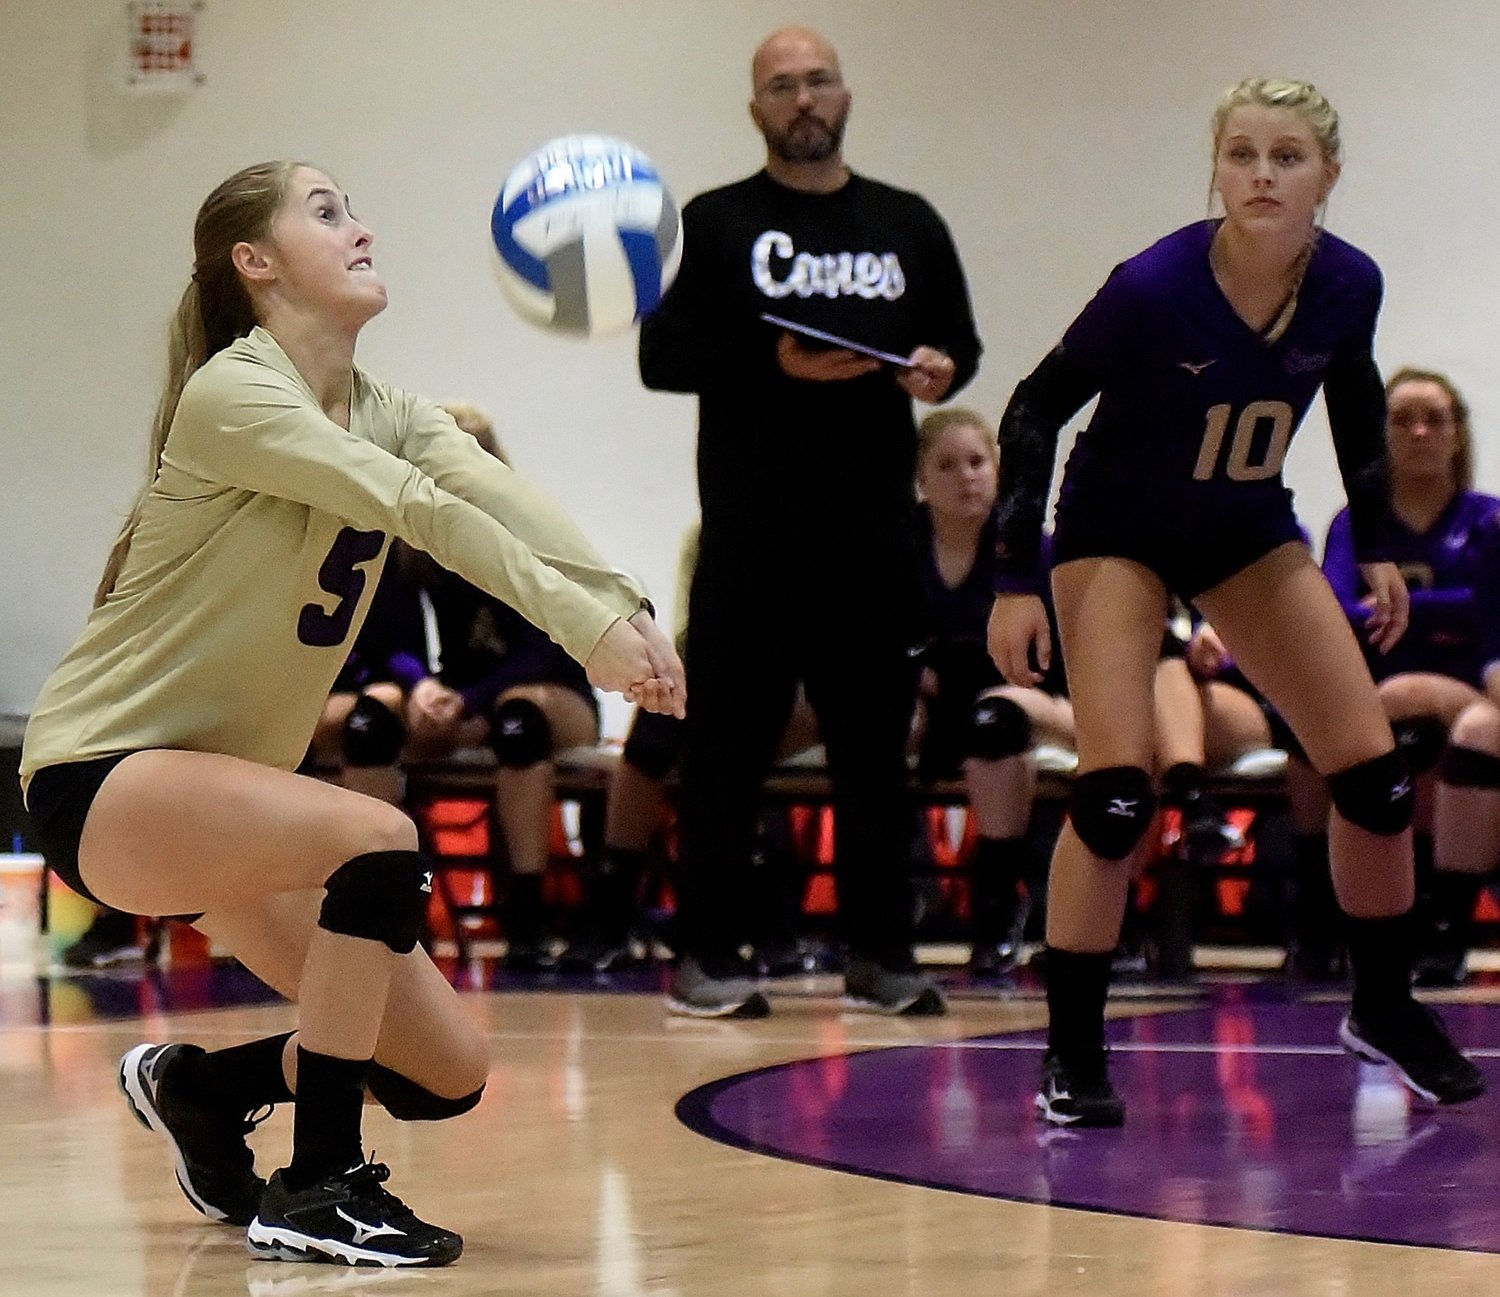 Cartersville libero Layne Condra (5) digs the ball, as Canes coach Dutch Cothran and teammate Anna Grace Brock watch, during a home match against Rome on Monday at The Storm Center.